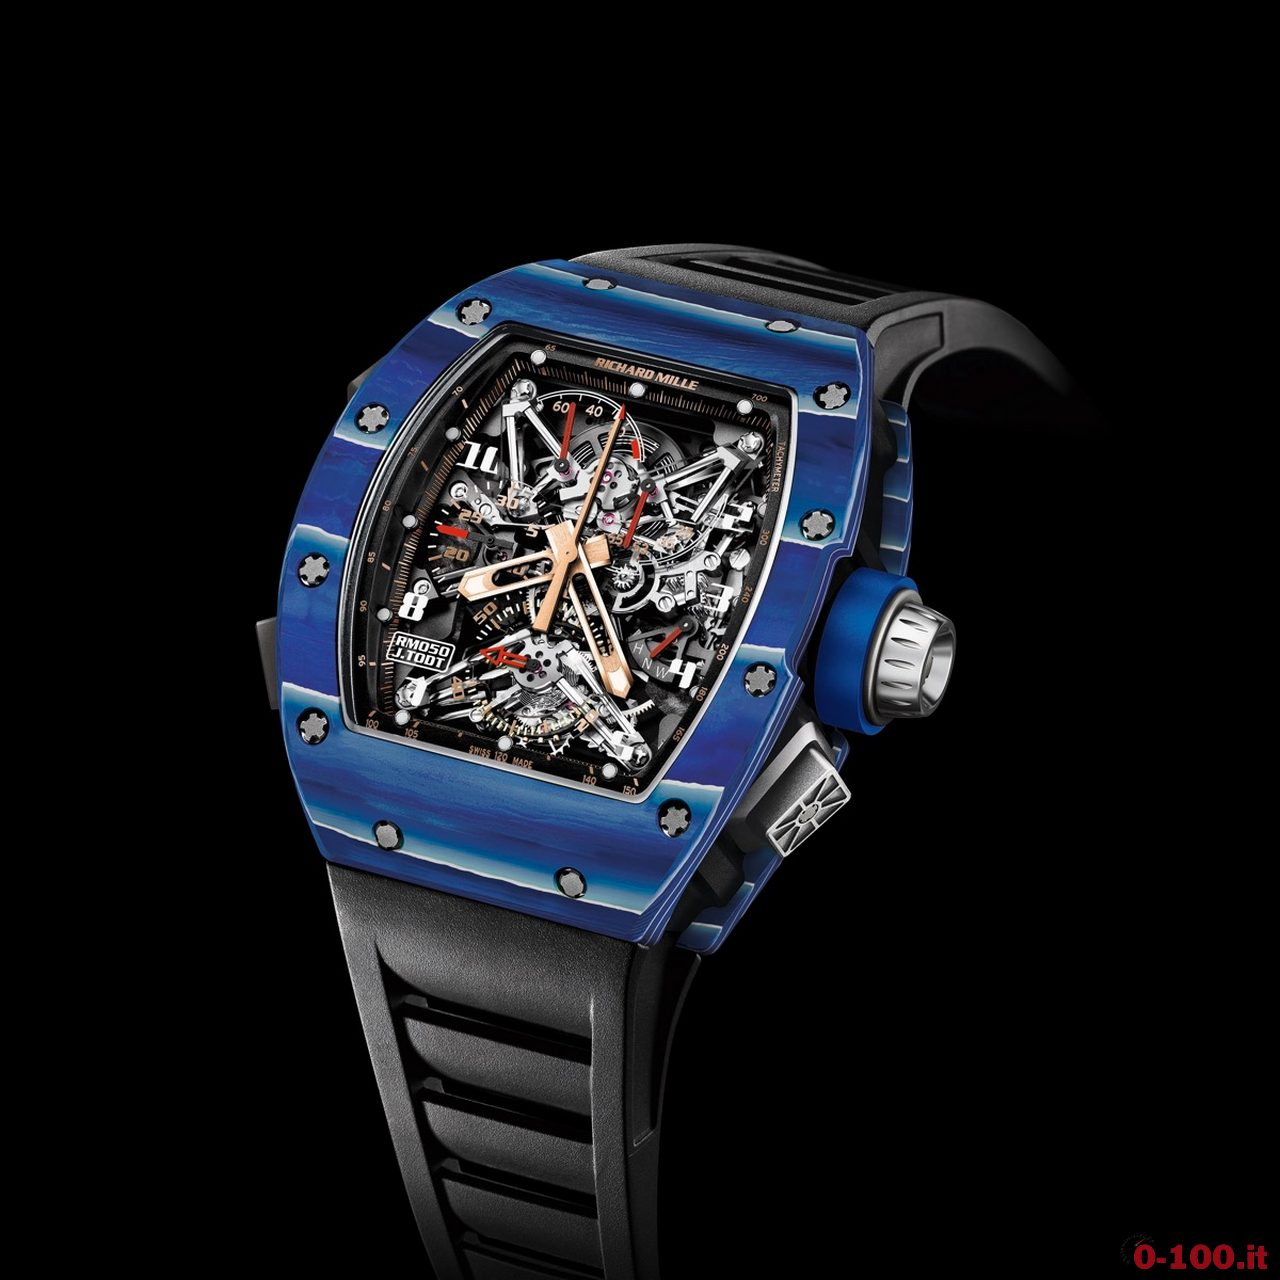 richard-mille-rm-11-03-jean-todt-50th-anniversary-limited-edition-prezzo-price_0-10011